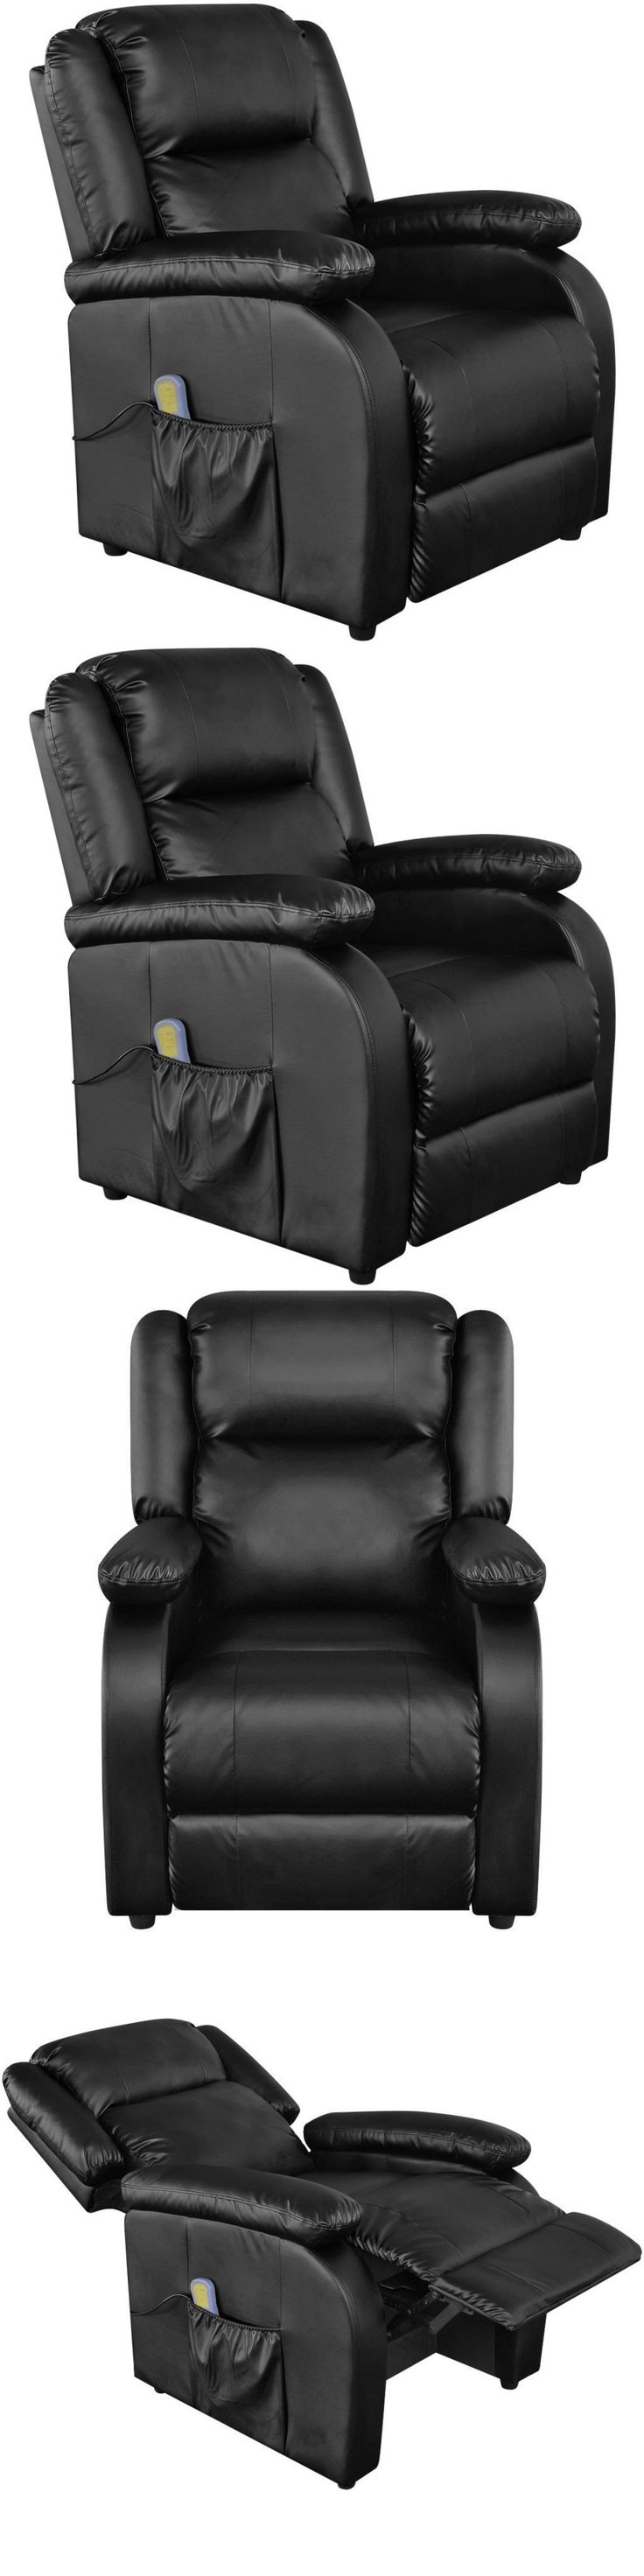 Electric Massage Chairs: Full Body Massage Chair Black Faux Leather Recliner Armchair Heated Chair Relax BUY IT NOW ONLY: $359.99